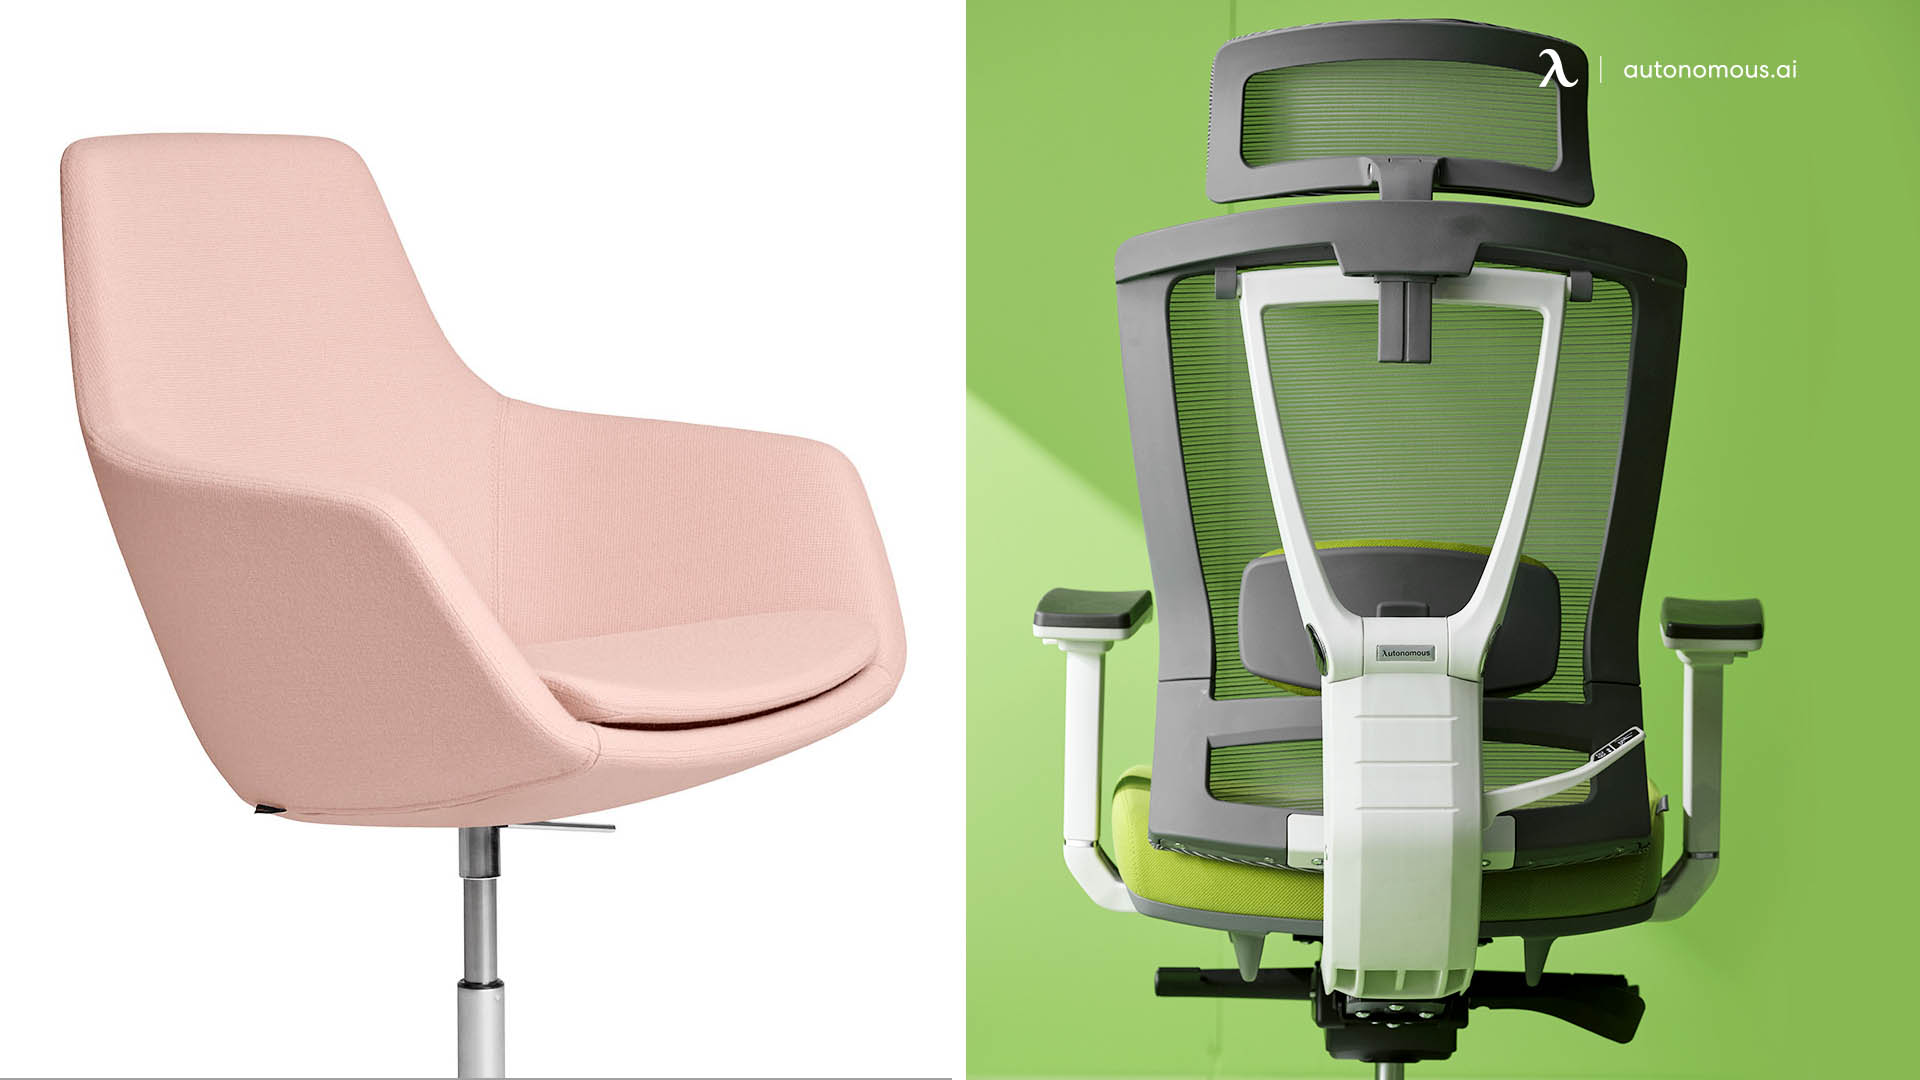 A Common Work Chair Vs. a Secretarial Chair with Back Support